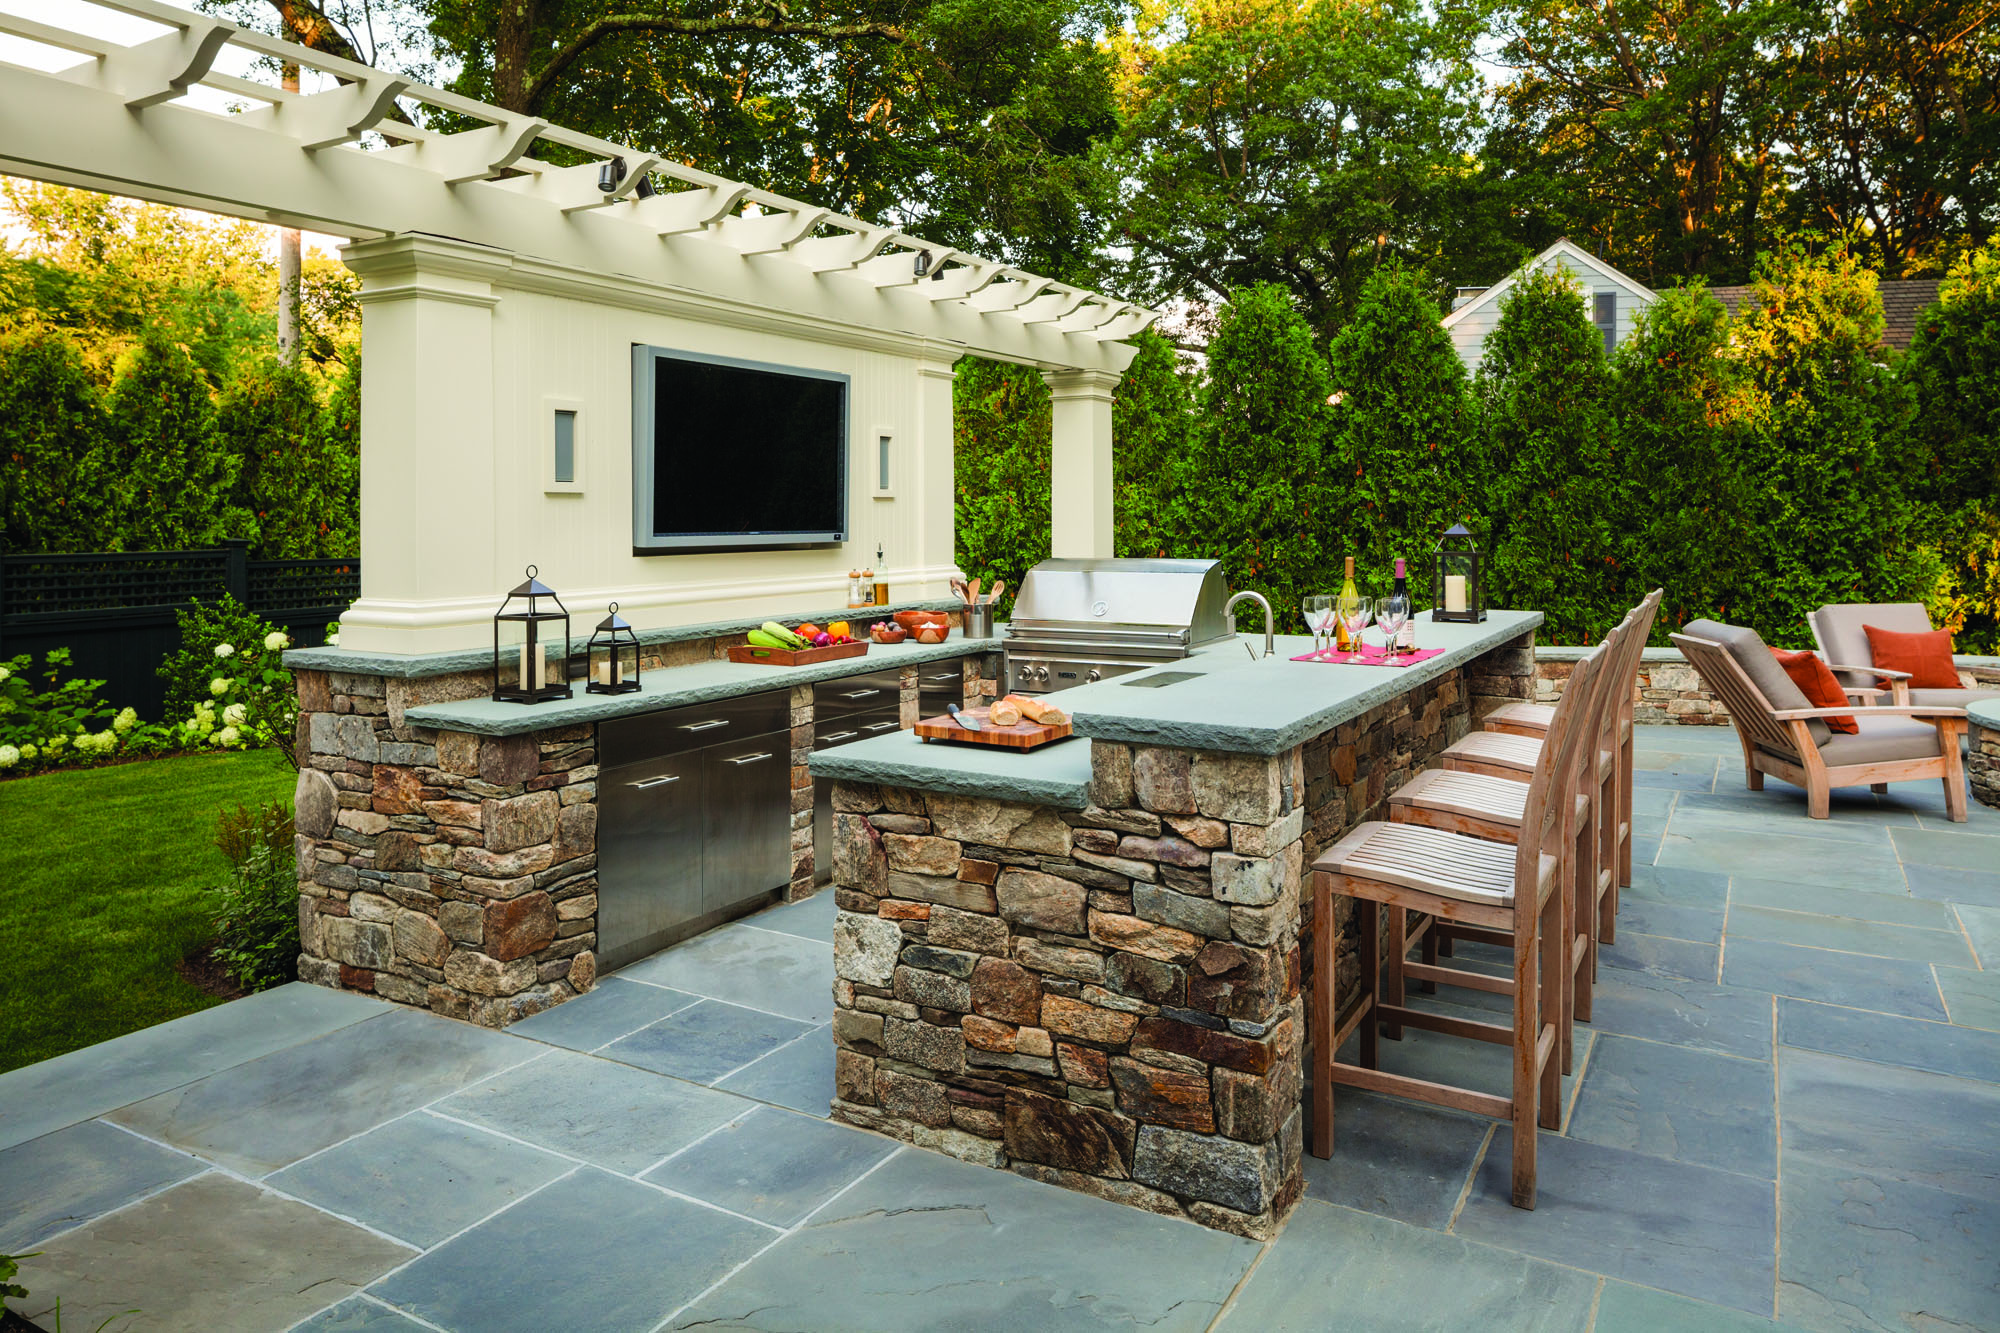 Traditional Outdoor Kitchens - Old House Journal Magazine